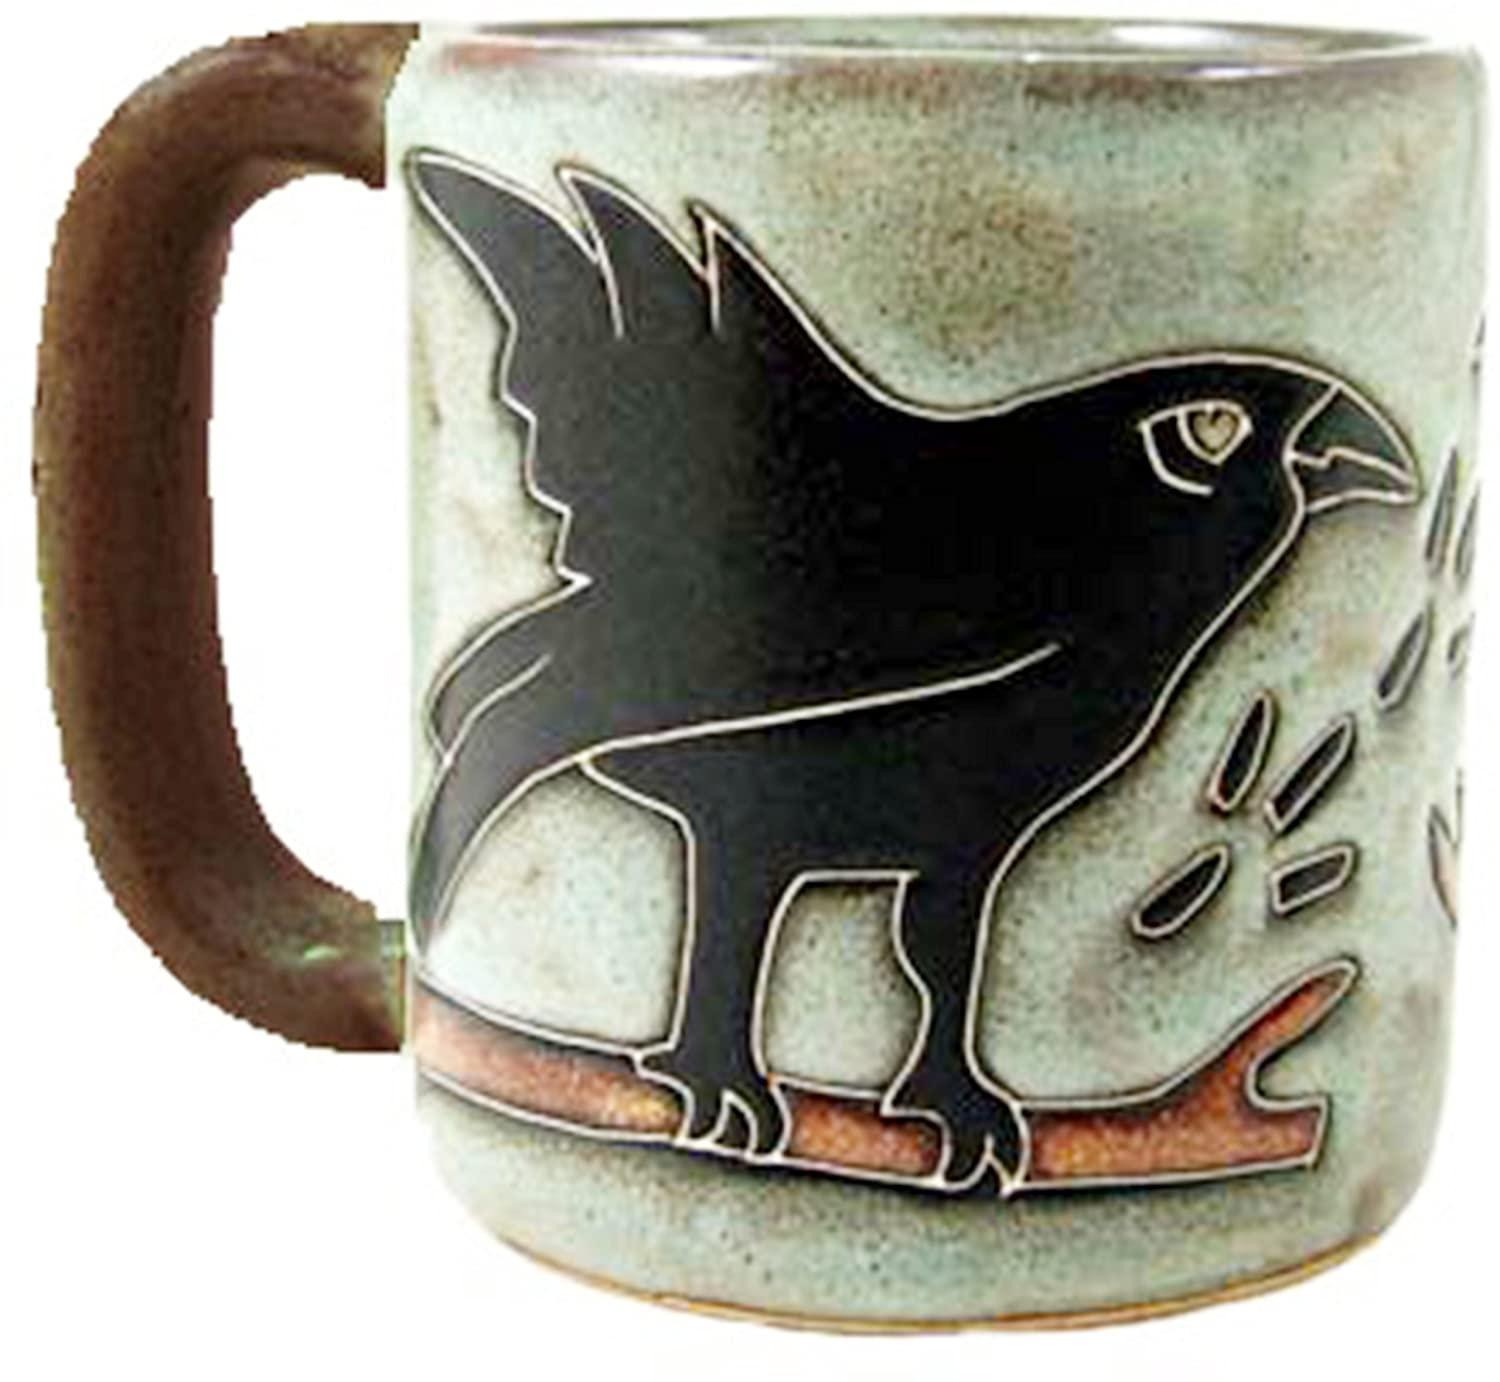 One (1) MARA STONEWARE COLLECTION - 16 Oz Coffee Cup Collectible Dinner Mug - Raven Bird Design